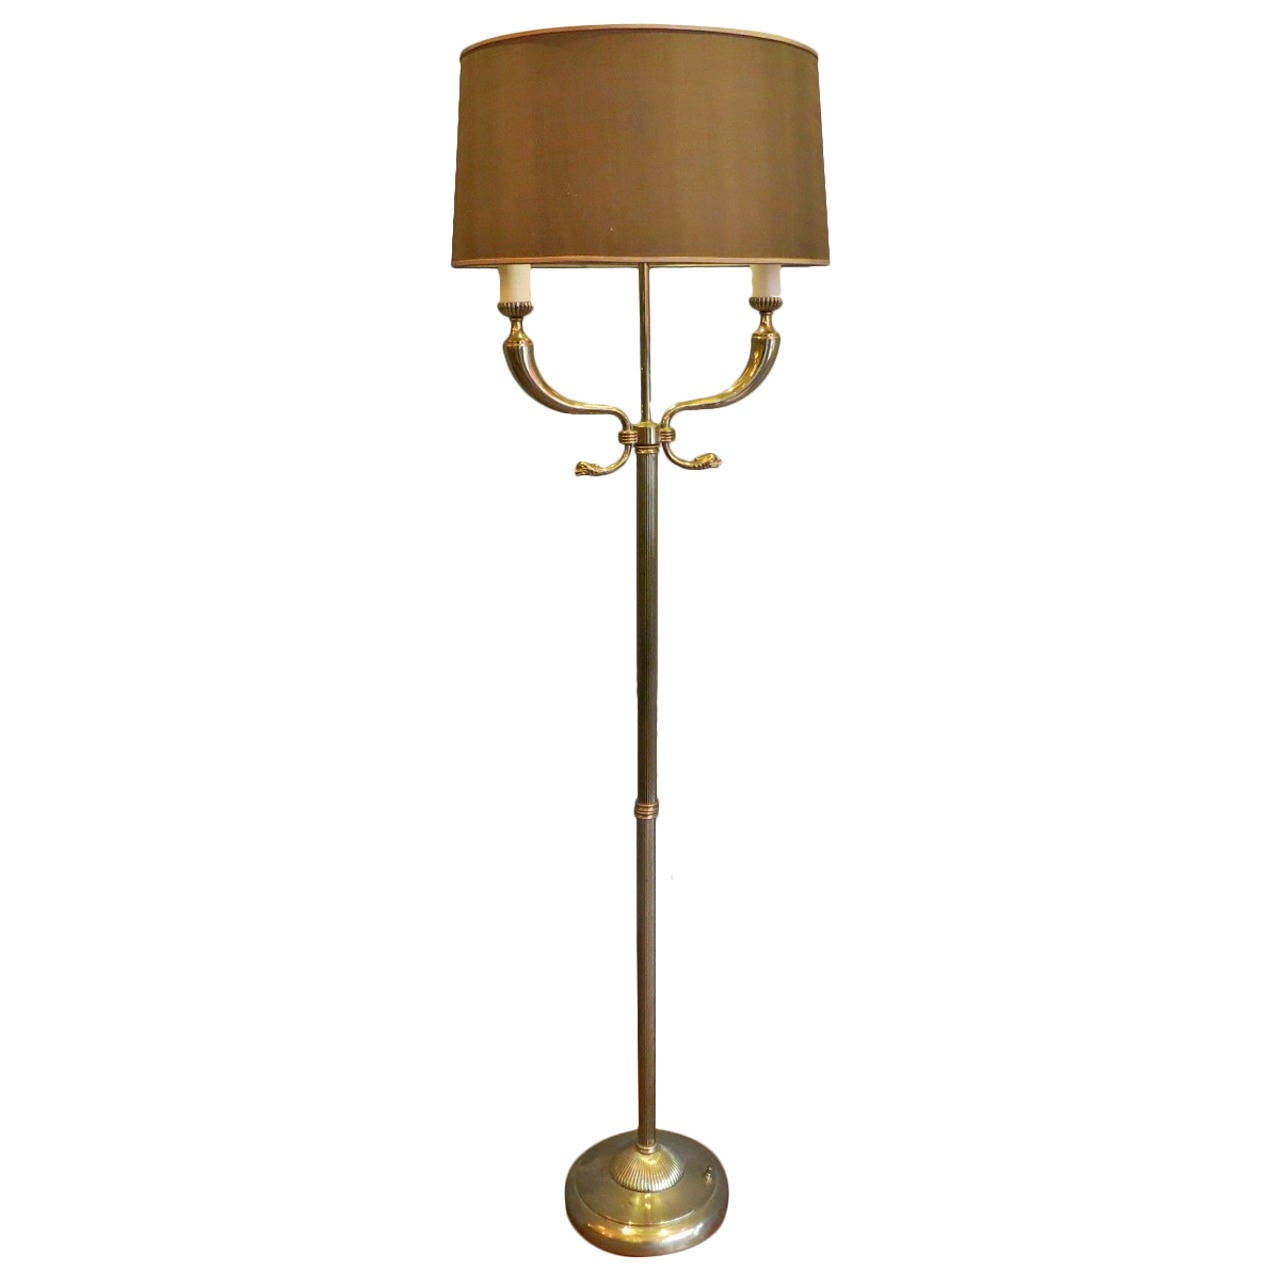 Large 1950s italian brass floor lamp for sale at 1stdibs for 1950 s brass floor lamp